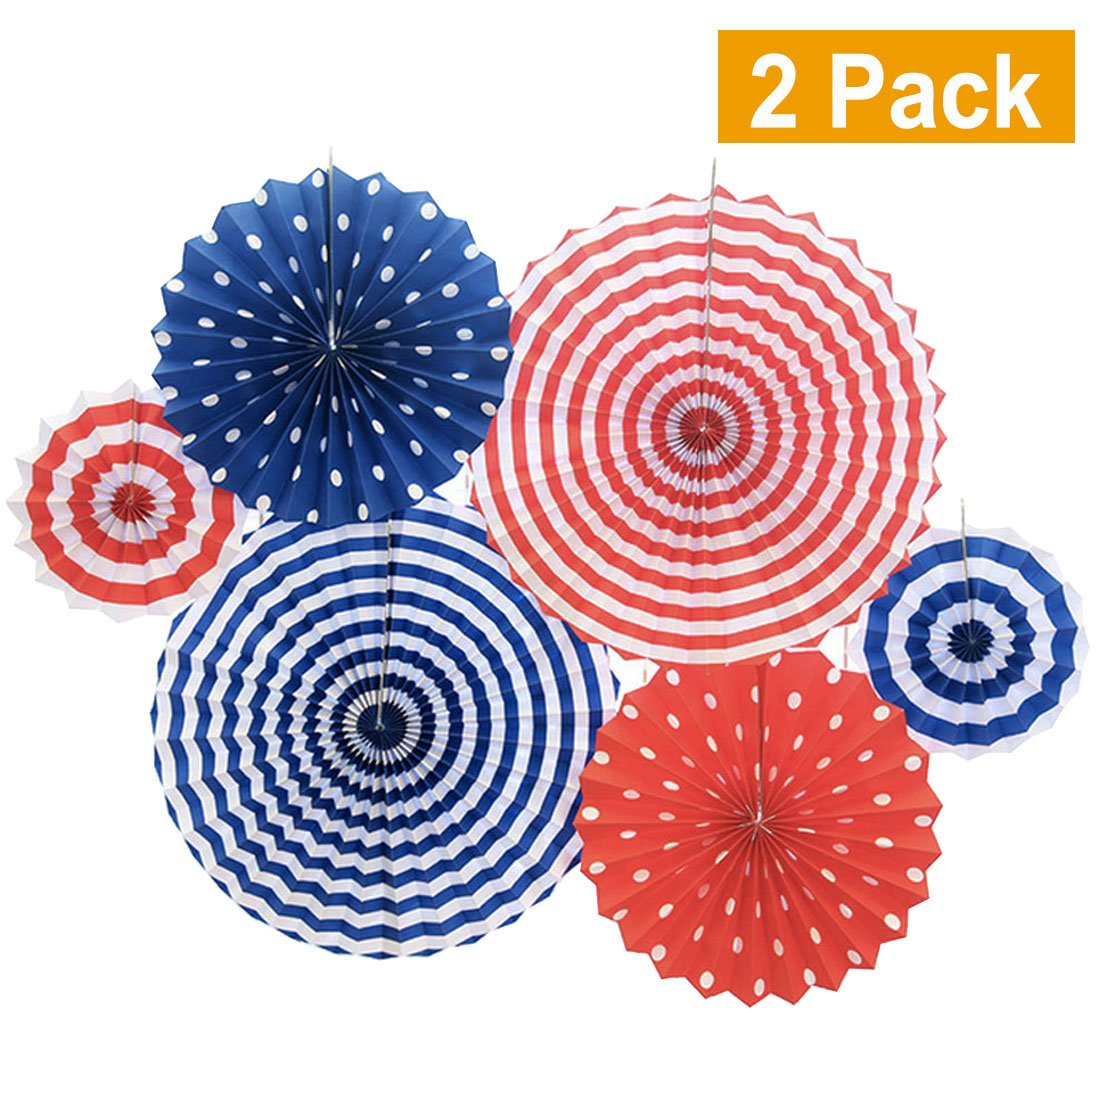 Set of 12 Patriotic Party/4th of July Colorful Hanging Paper Fans Rosettes Party Decorations Fiesta Party Supplies Photo Props for Wedding Birthday Baby Shower Event, Red/White/Blue(Style 2)